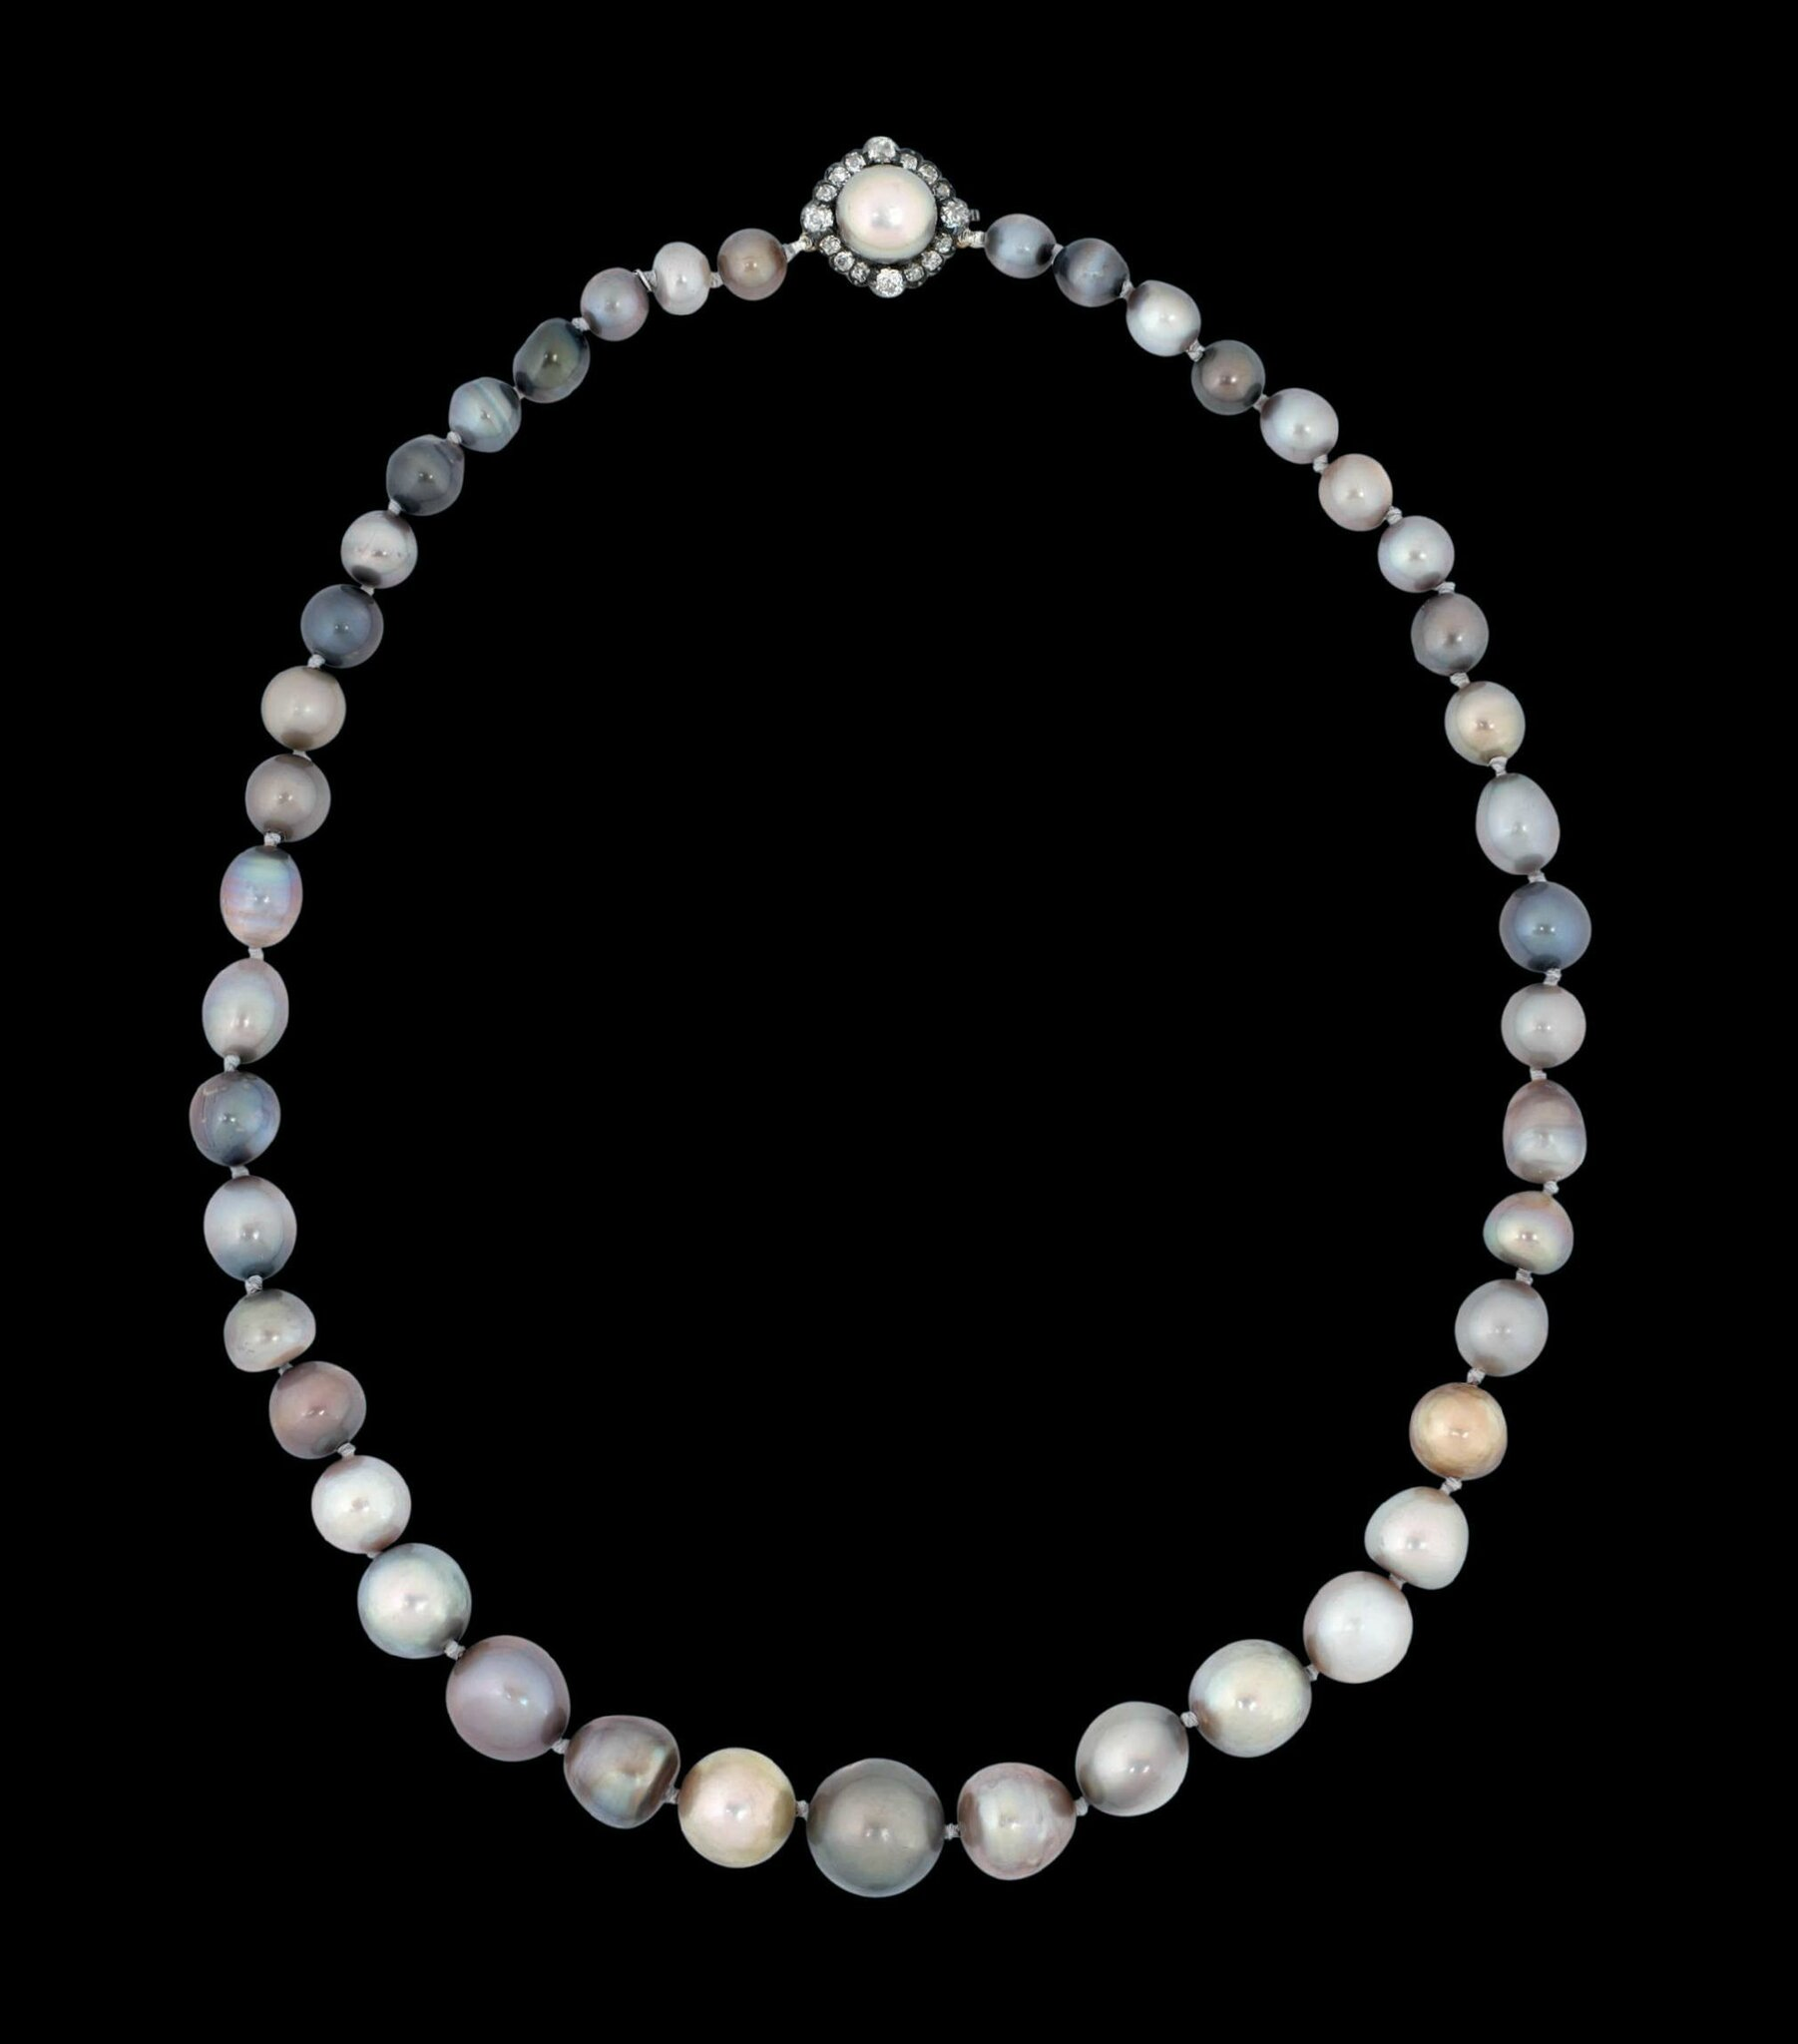 Royal Pearls. Queen Isabella II of Spain's natural coloured pearl necklace